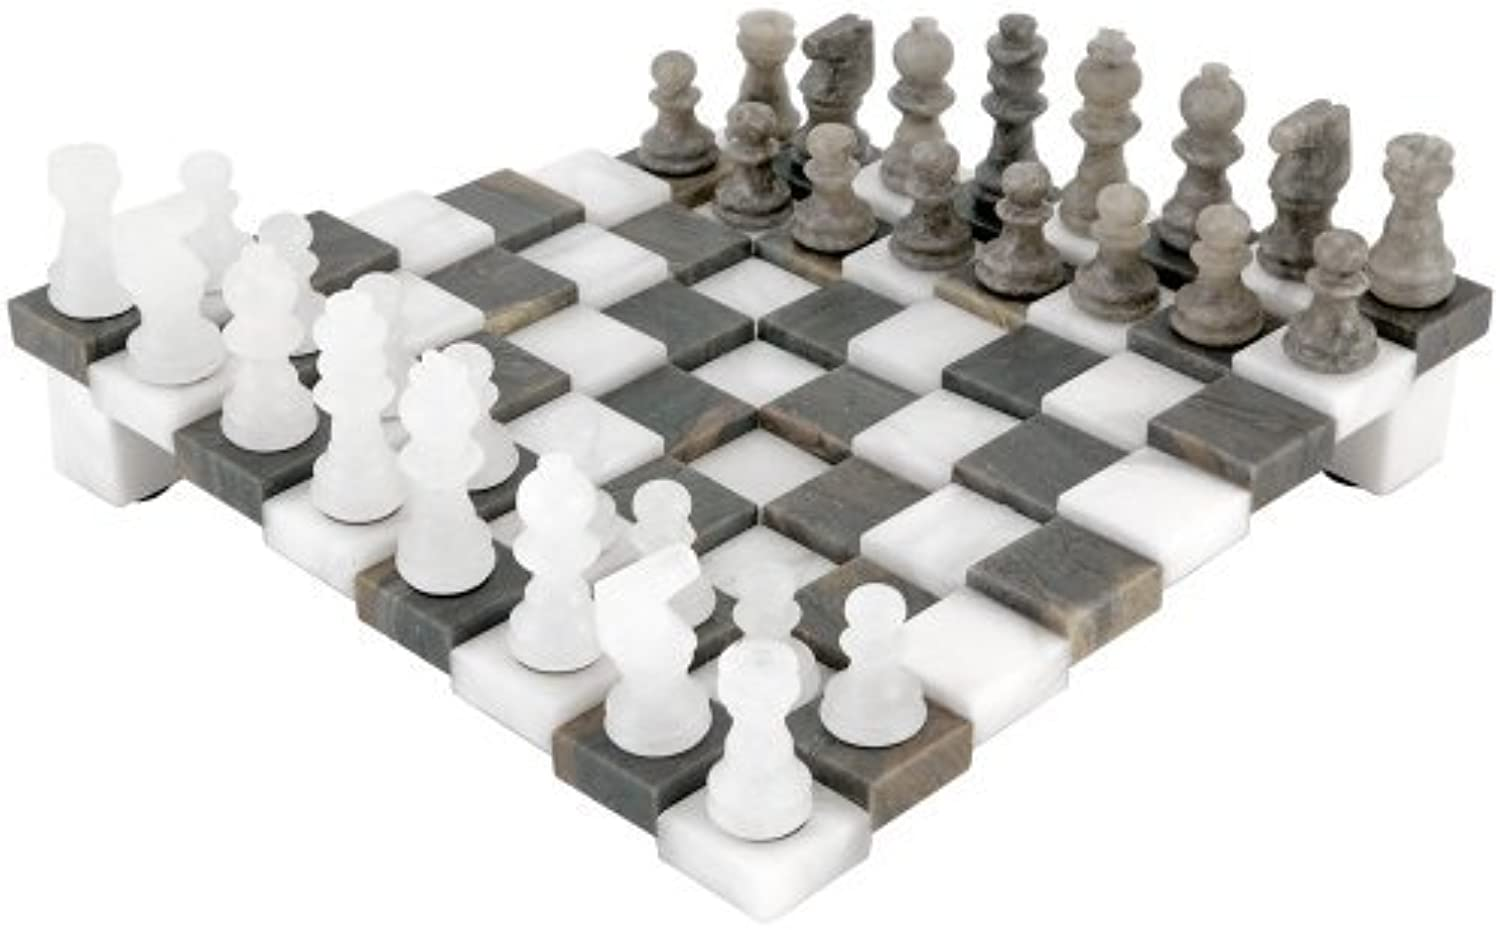 3 Dimensional Grey and White Alabaster Chess Set 9.5 Inches